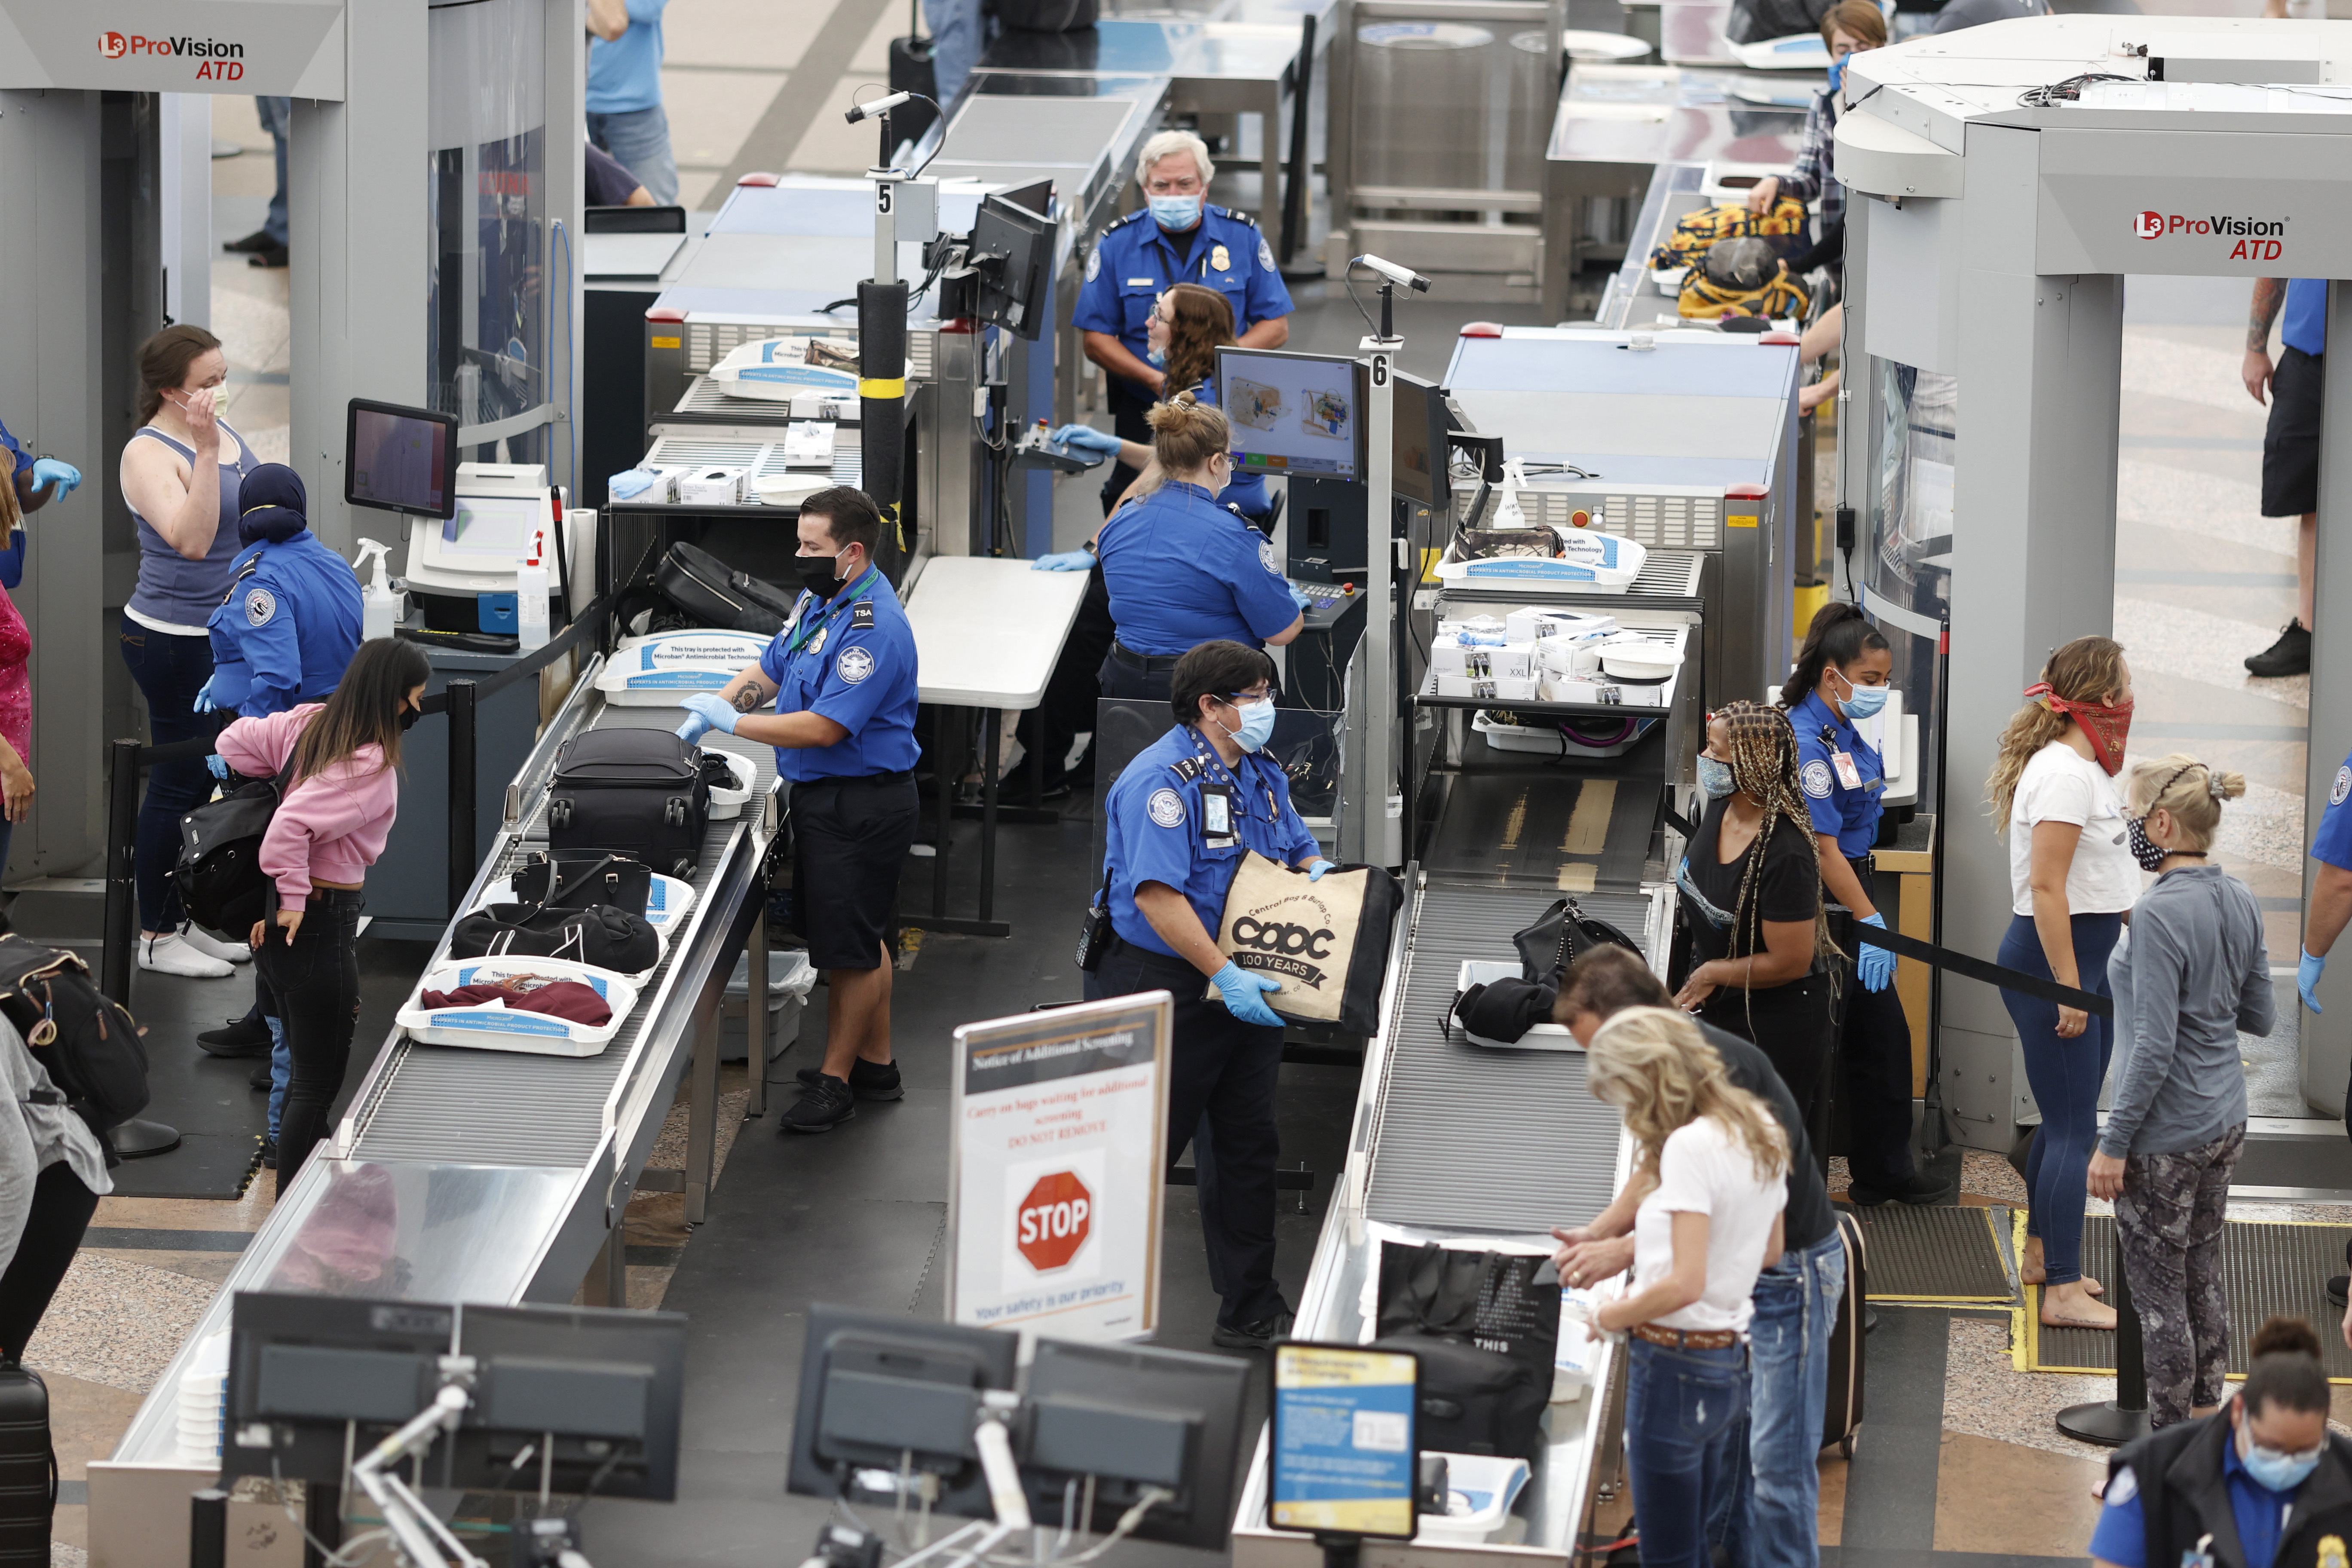 Travelers left nearly a million dollars at airport checkpoints last year thumbnail